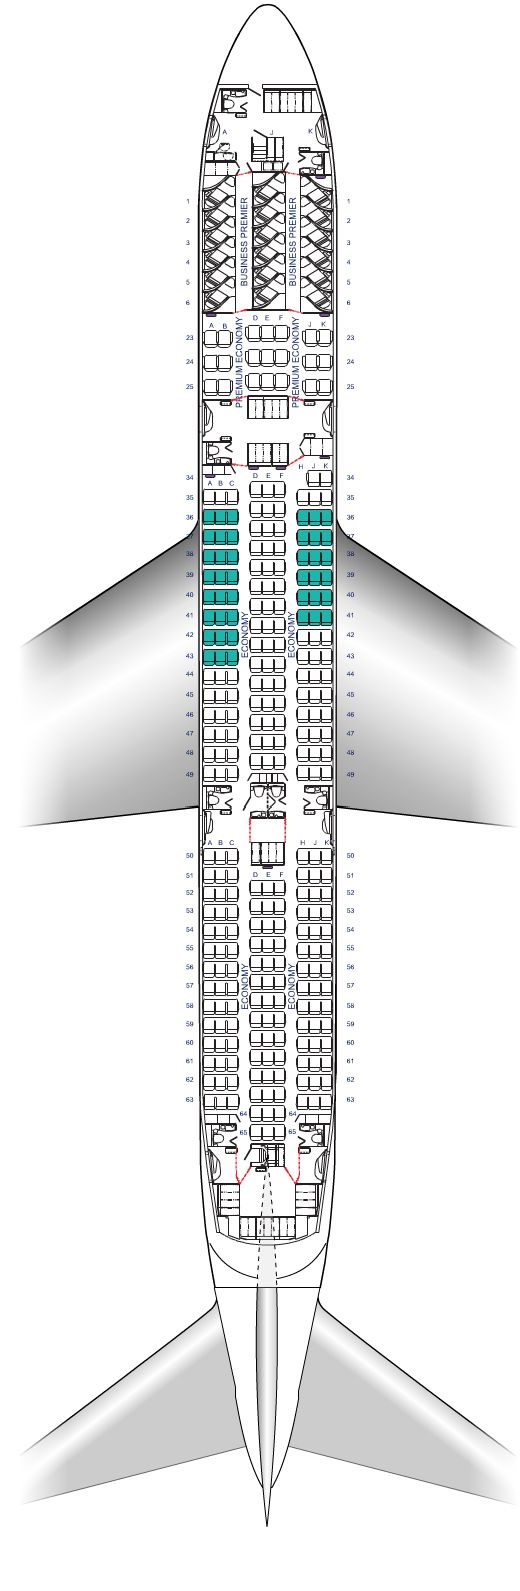 Air New Zealand Boeing 787-9 Dreamliner Seat Map Diagram Released